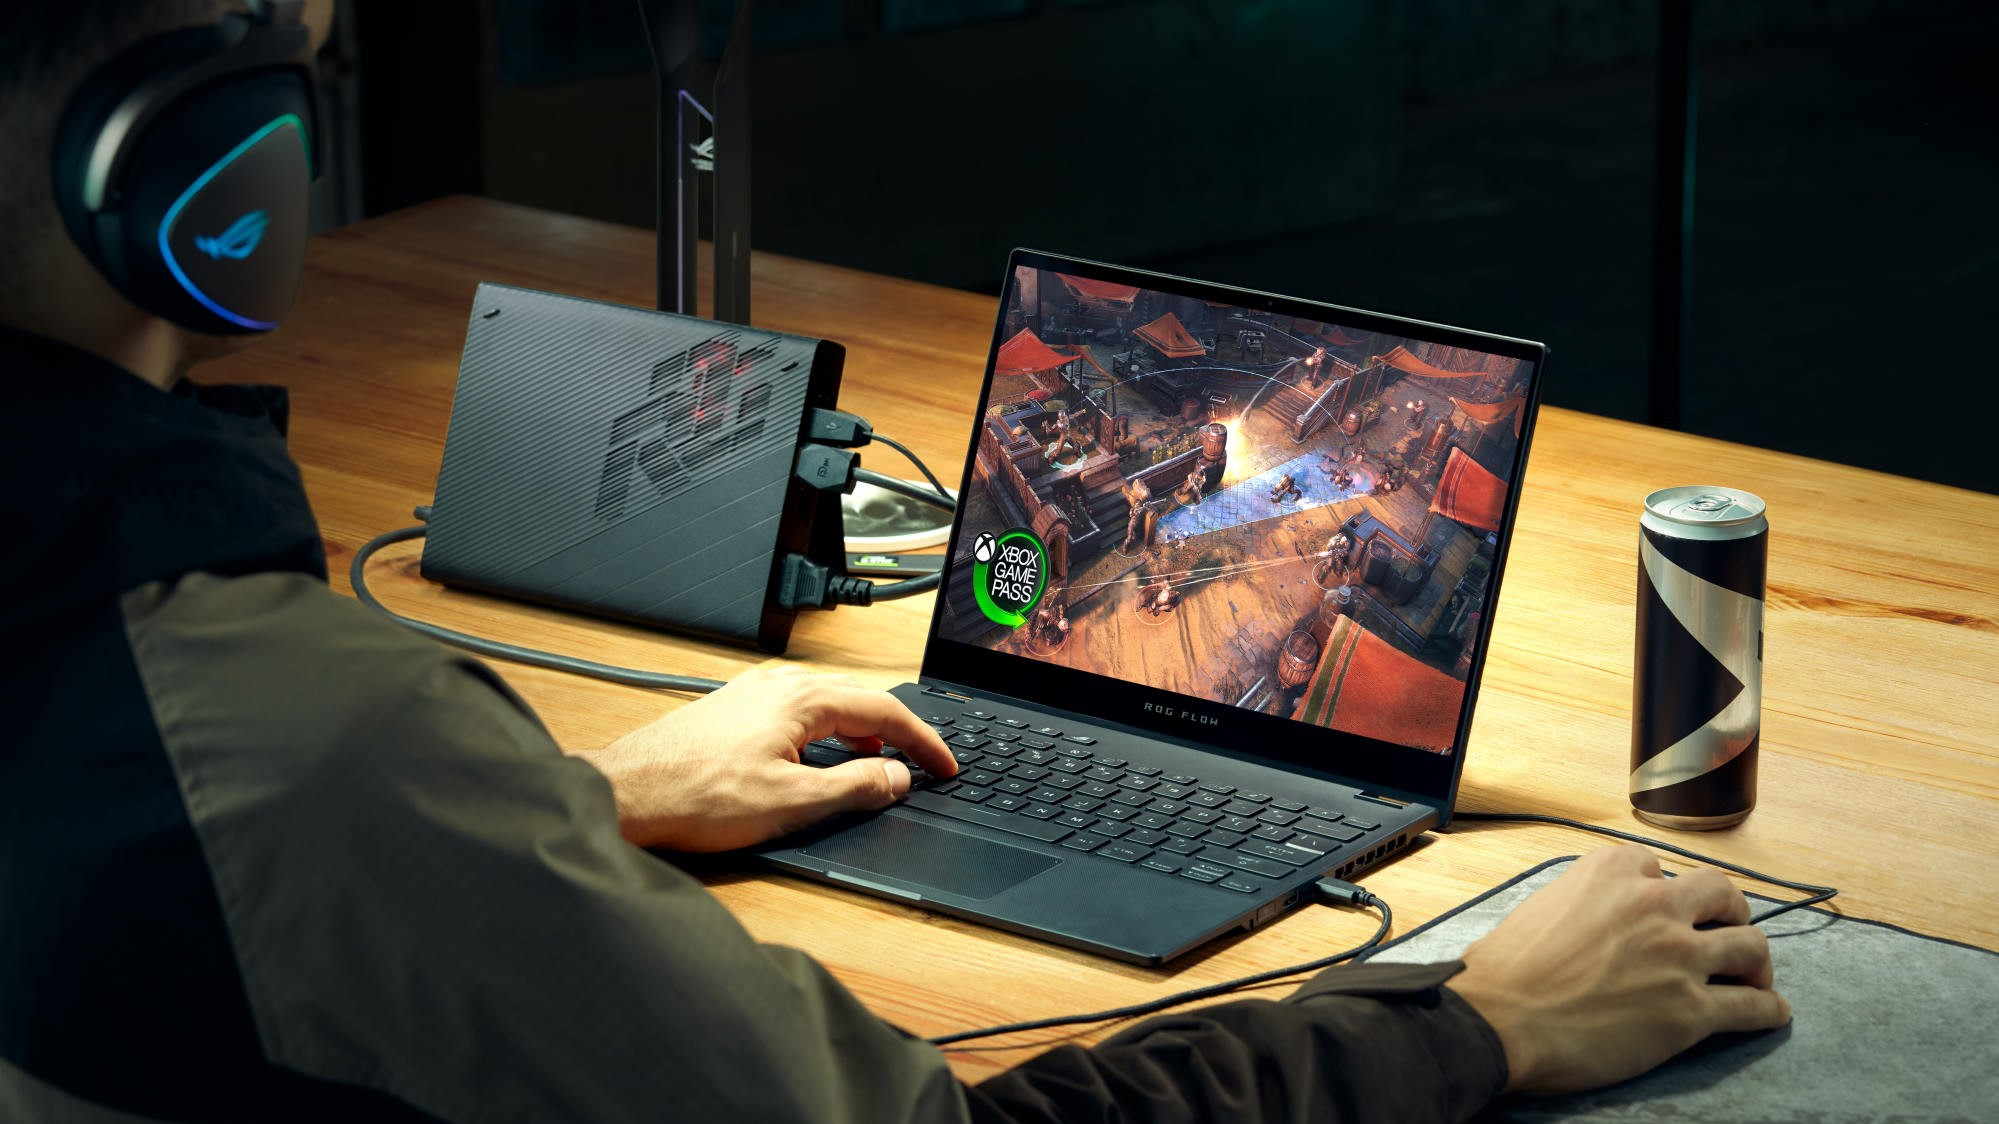 Top 5 reasons to BUY or NOT to buy the ASUS ROG Flow X13 (GV301)